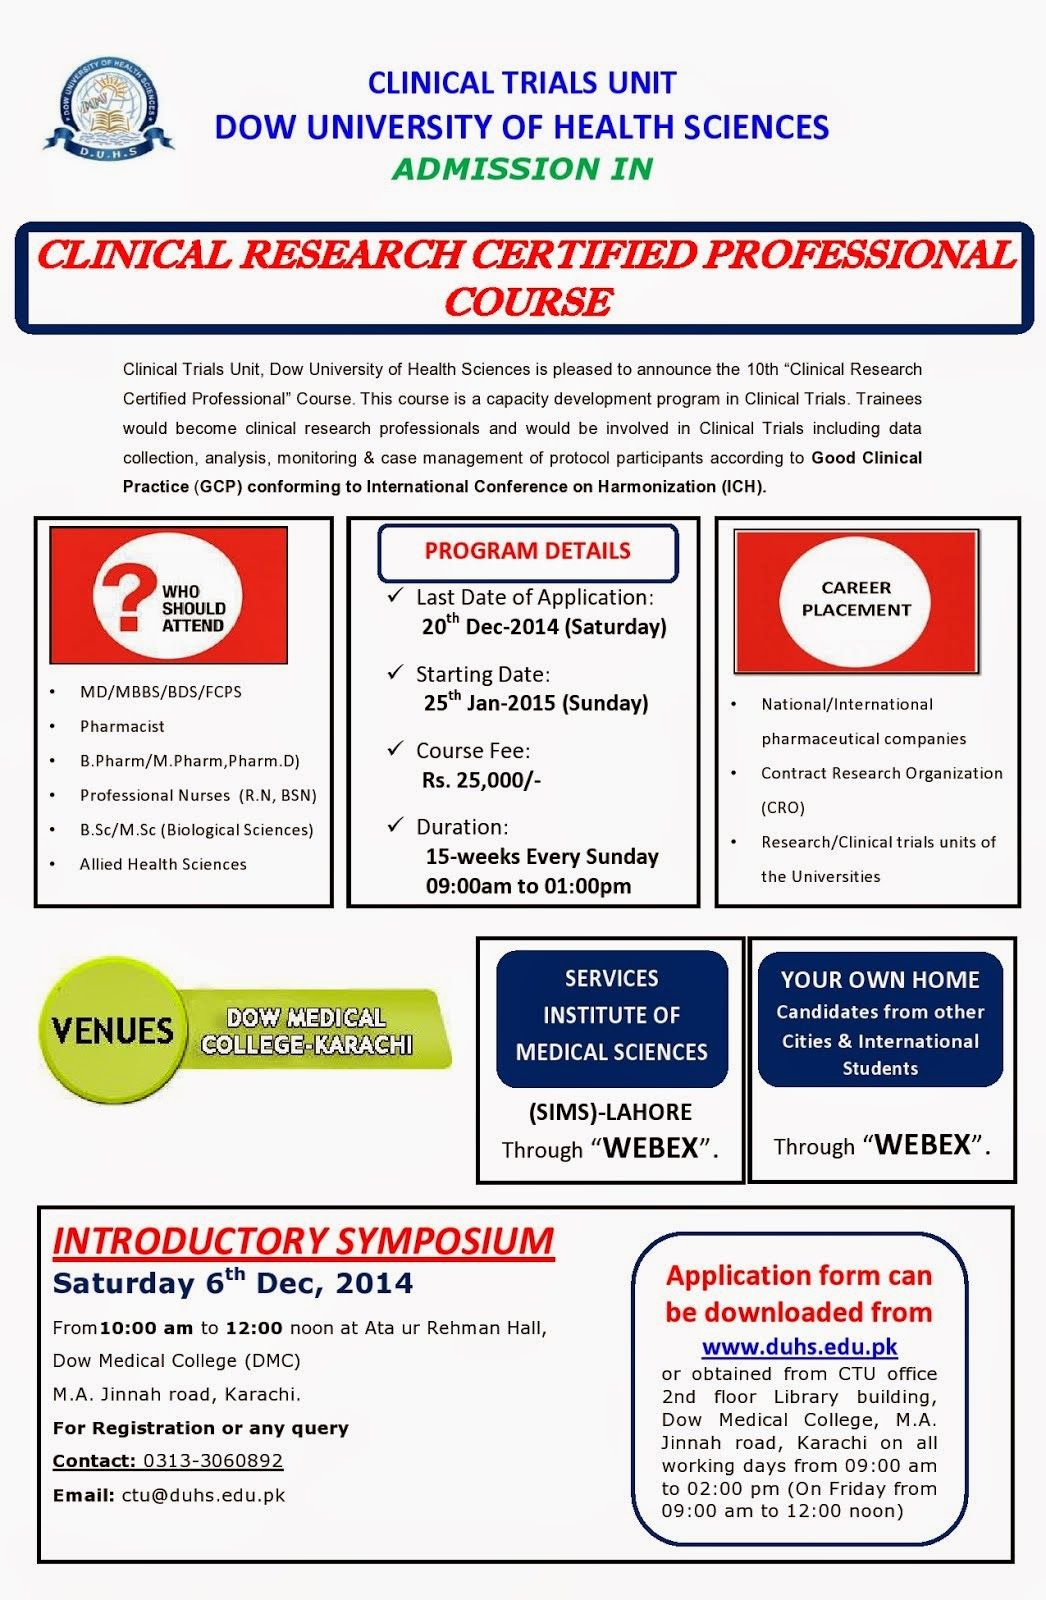 YAISHWARYAJ: {Awareness} Admission in 10th CLINICAL RESEARCH